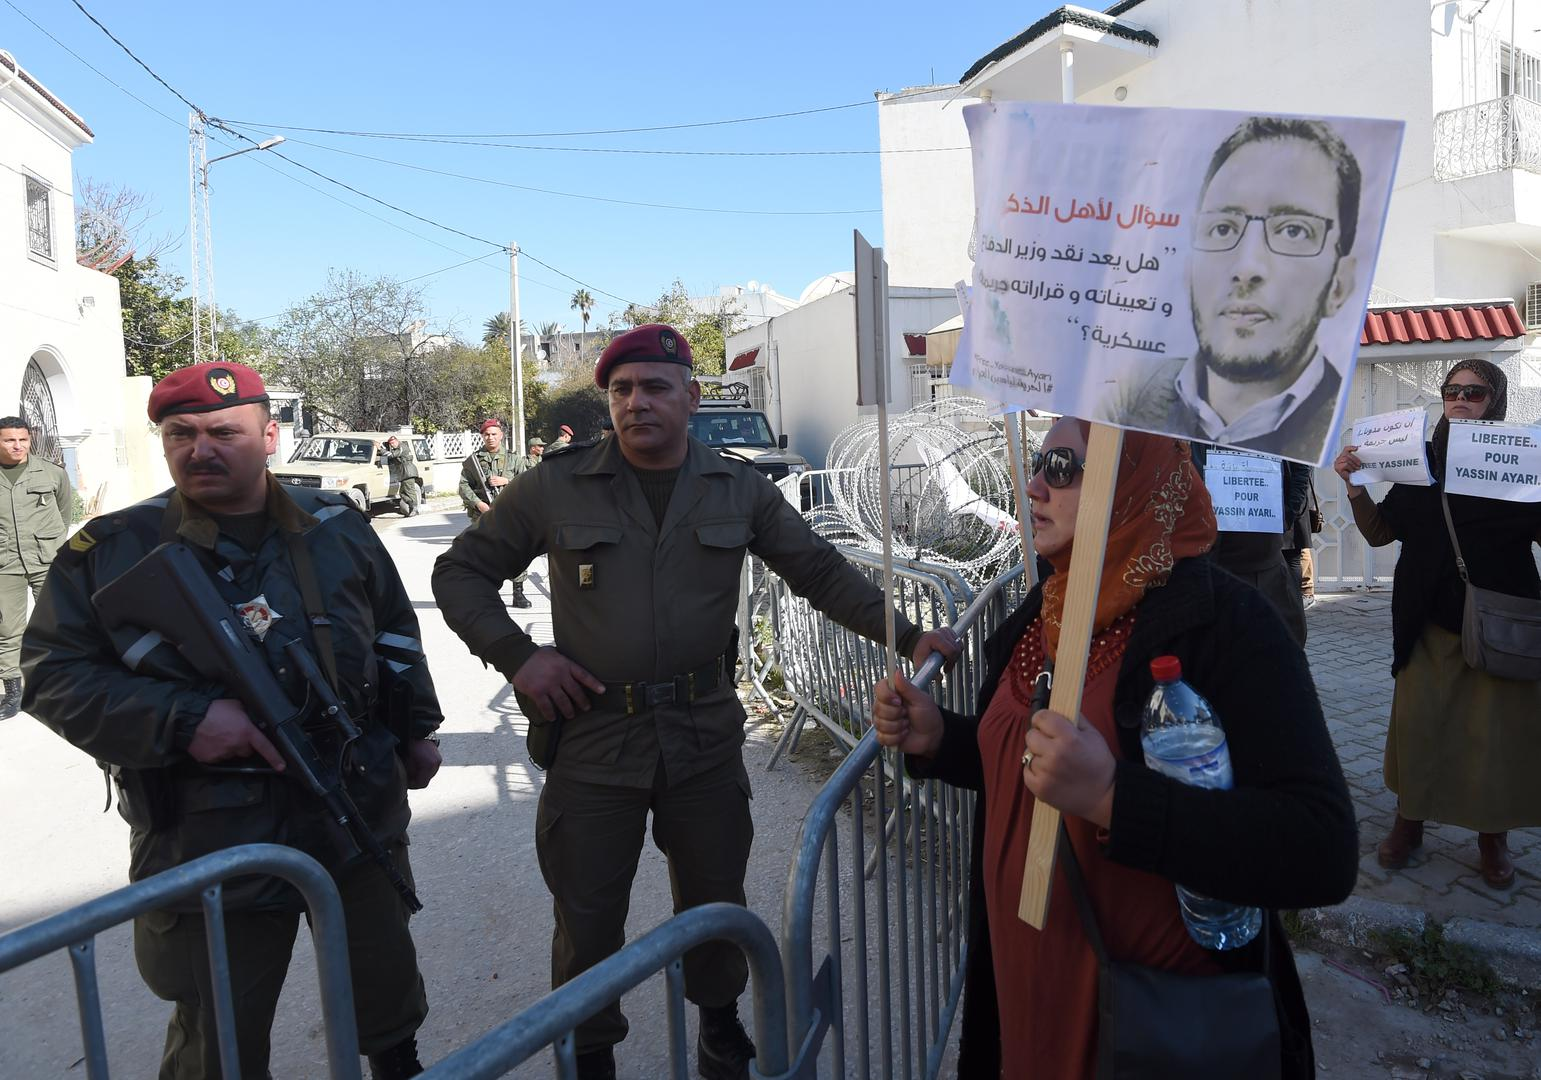 Tunisian protesters stand outside a military court in Tunis as they demonstrate in support of blogger Yassine Ayari during his appeal hearing on March 3, 2015.